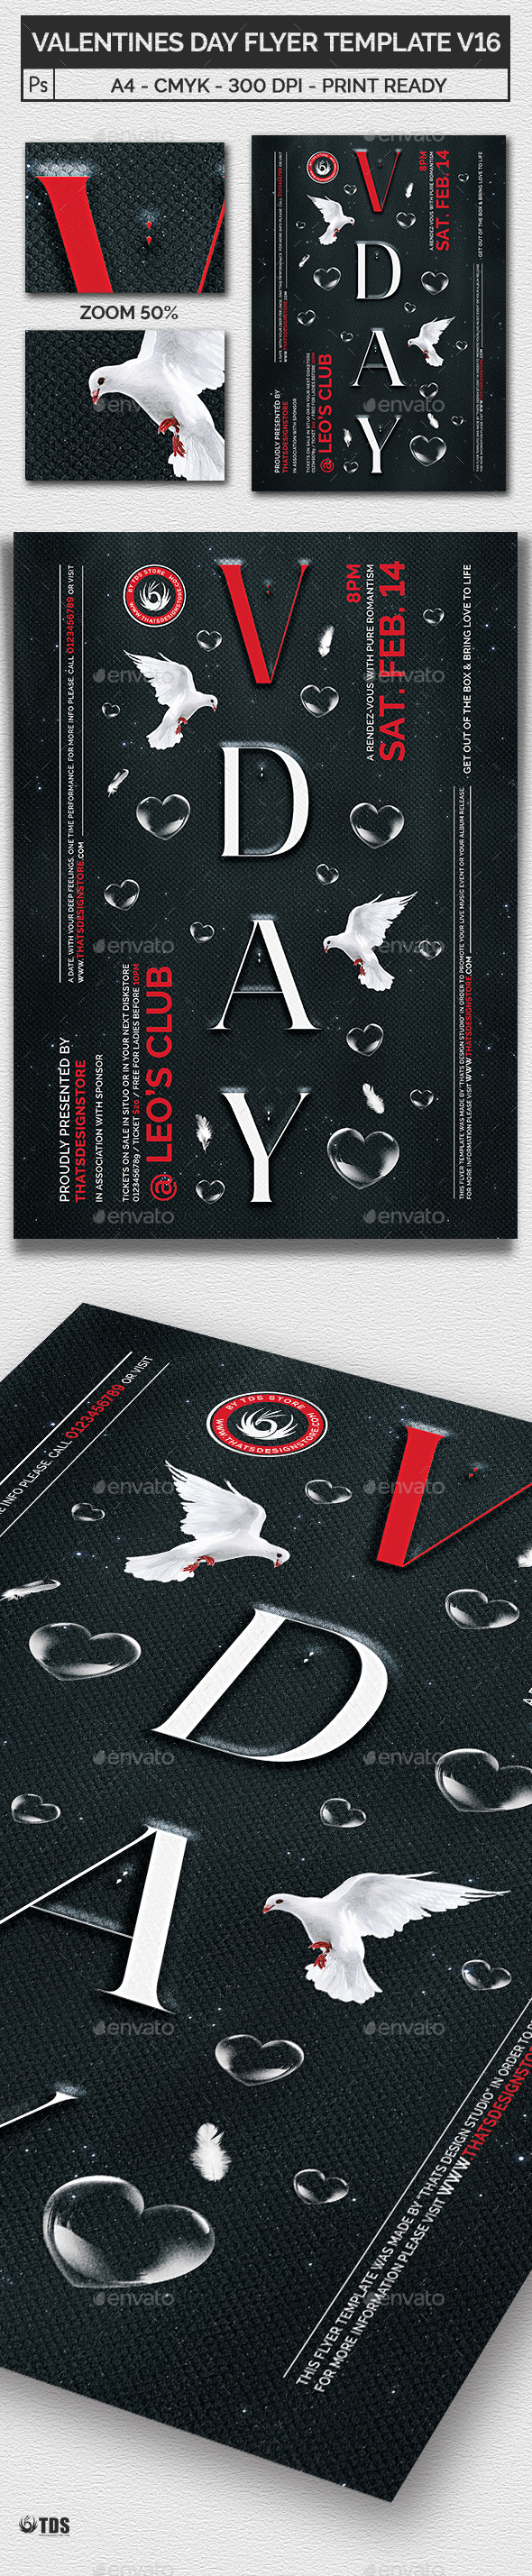 Valentines Day Flyer Template V16 - Clubs & Parties Events